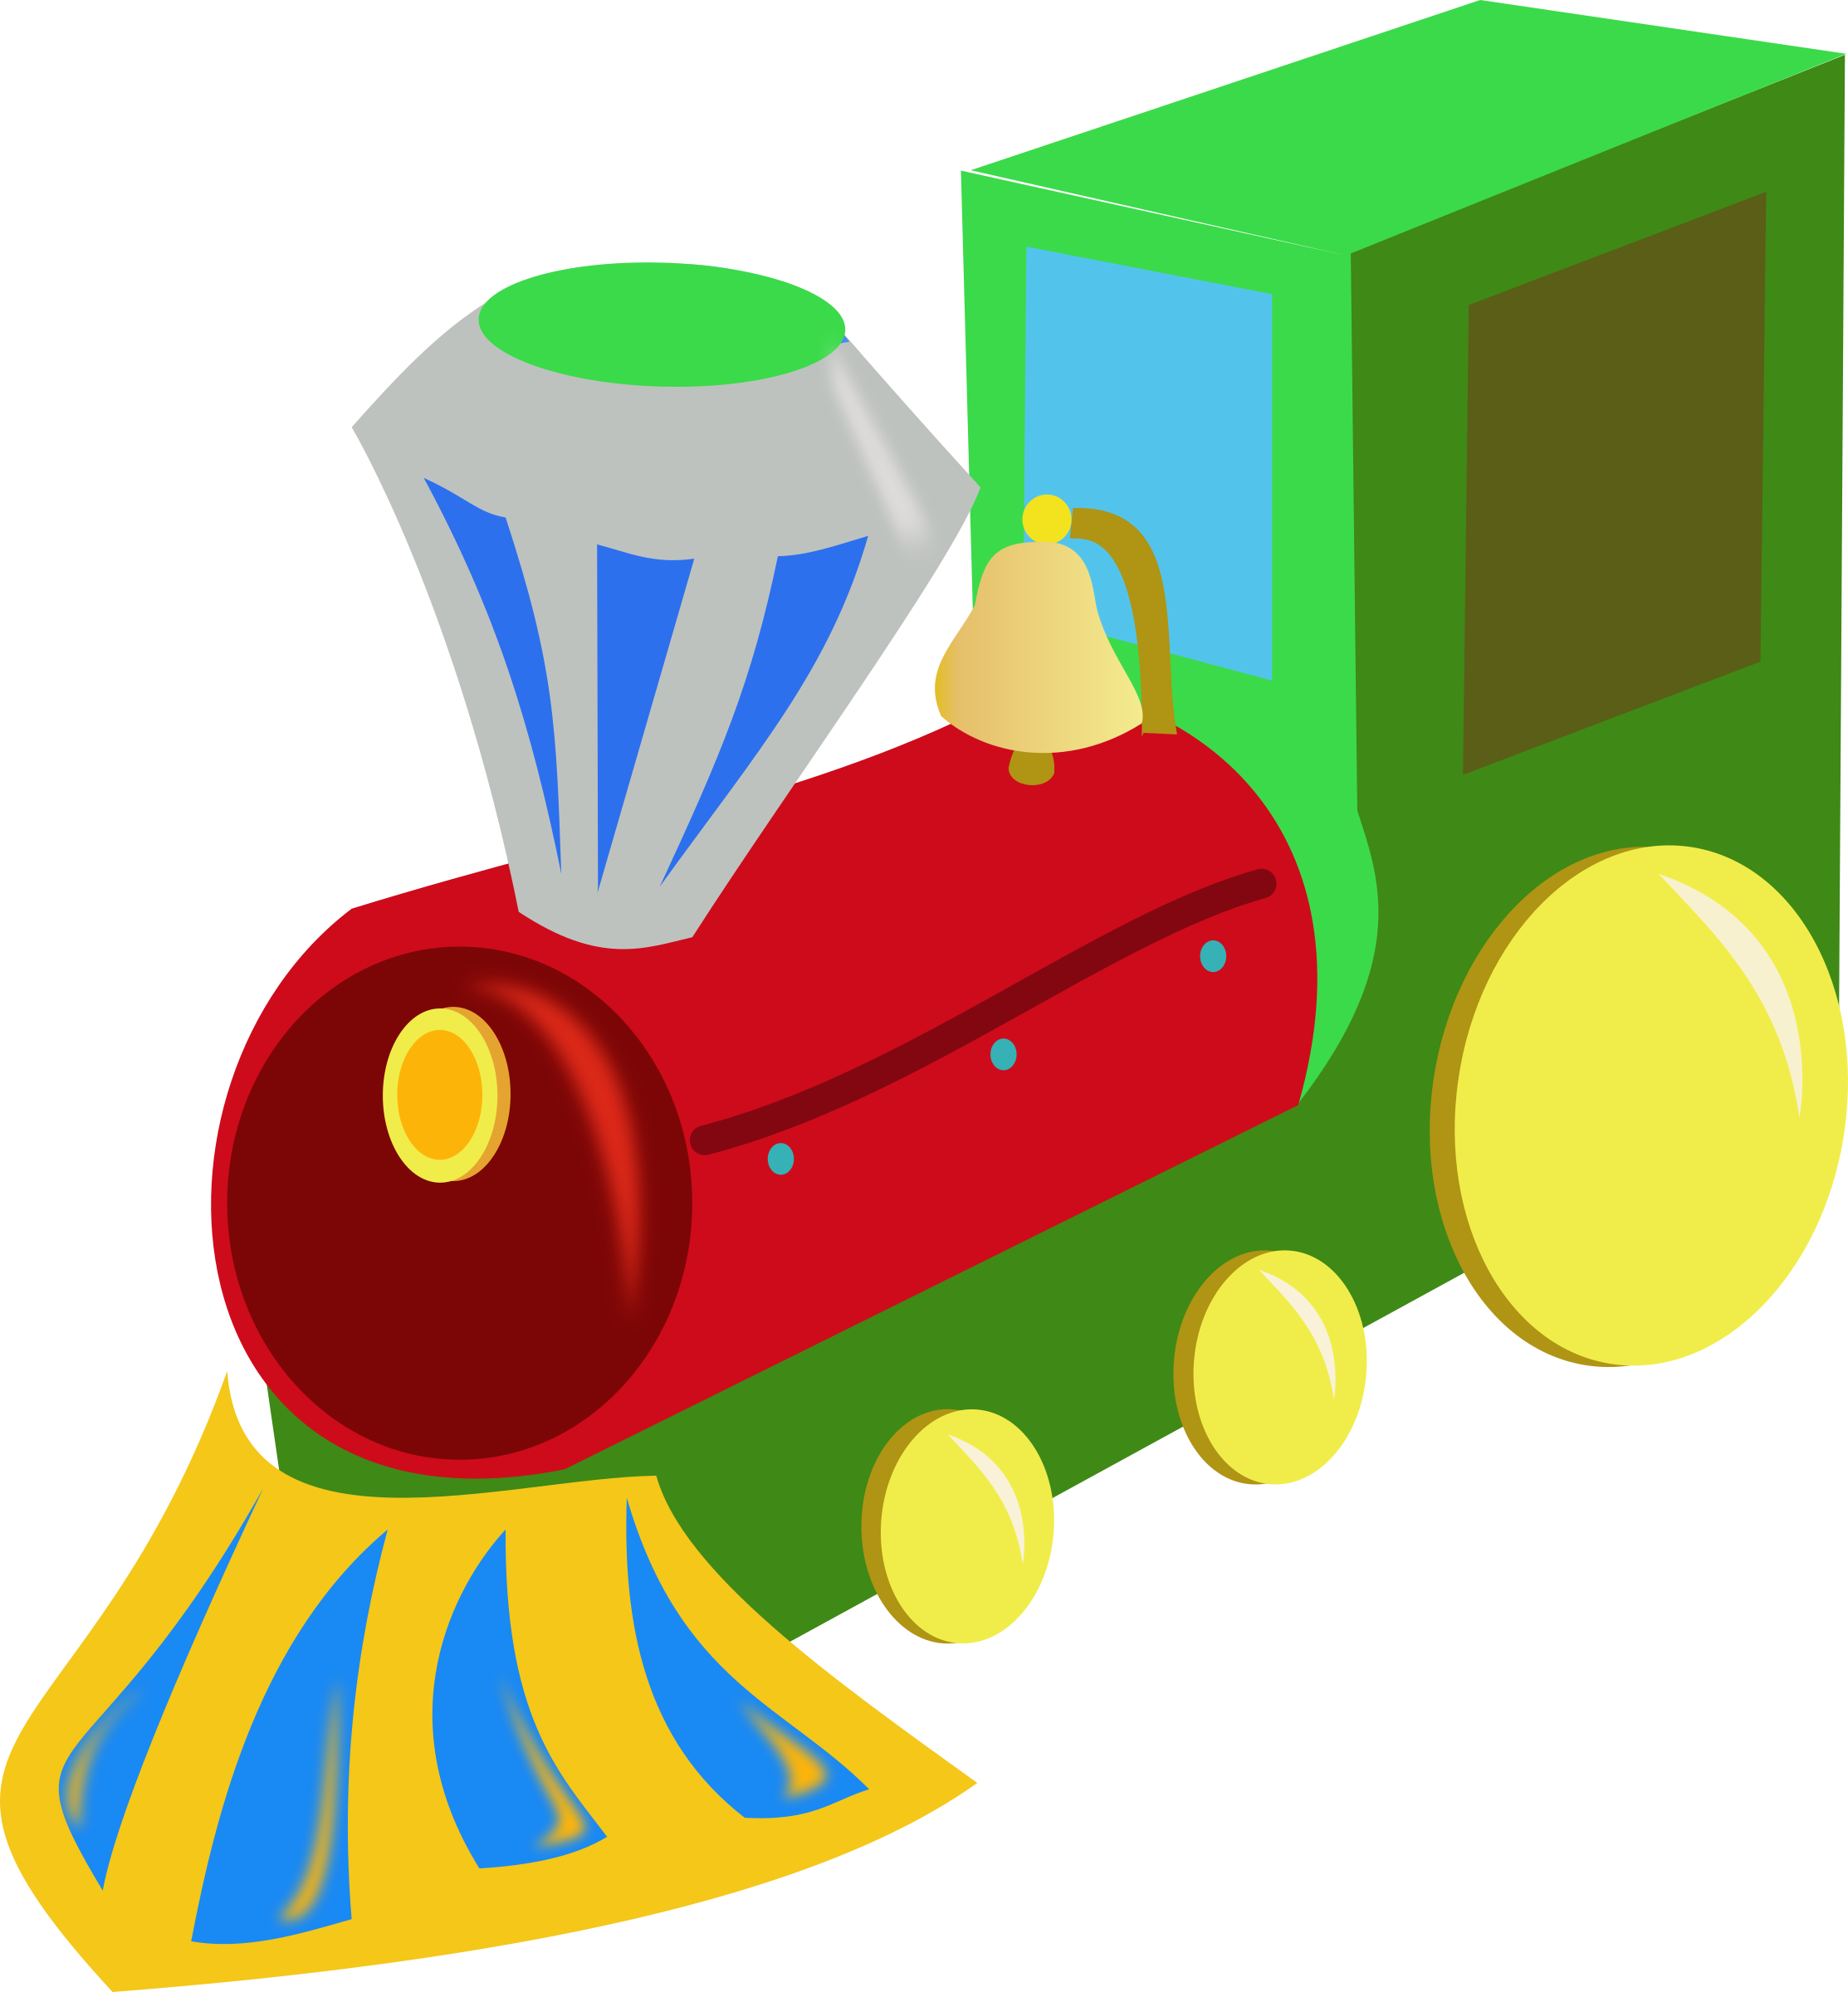 Tren icons png free. Clouds clipart train